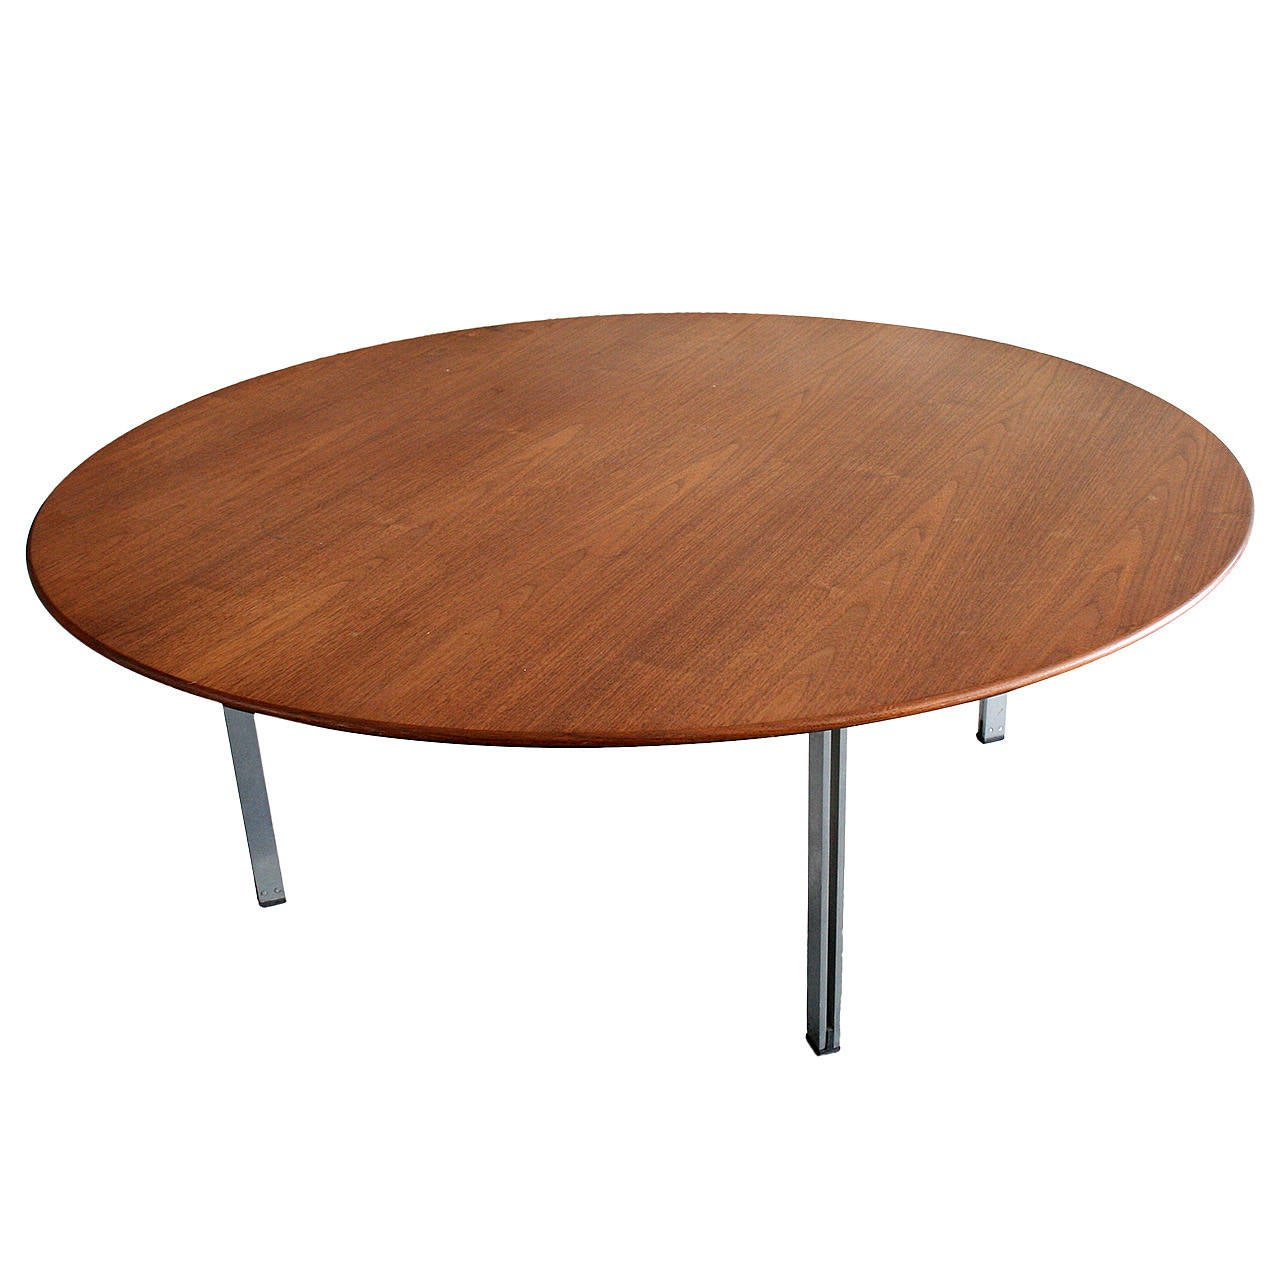 Early florence knoll parallel bar walnut coffee table at Florence knoll coffee table